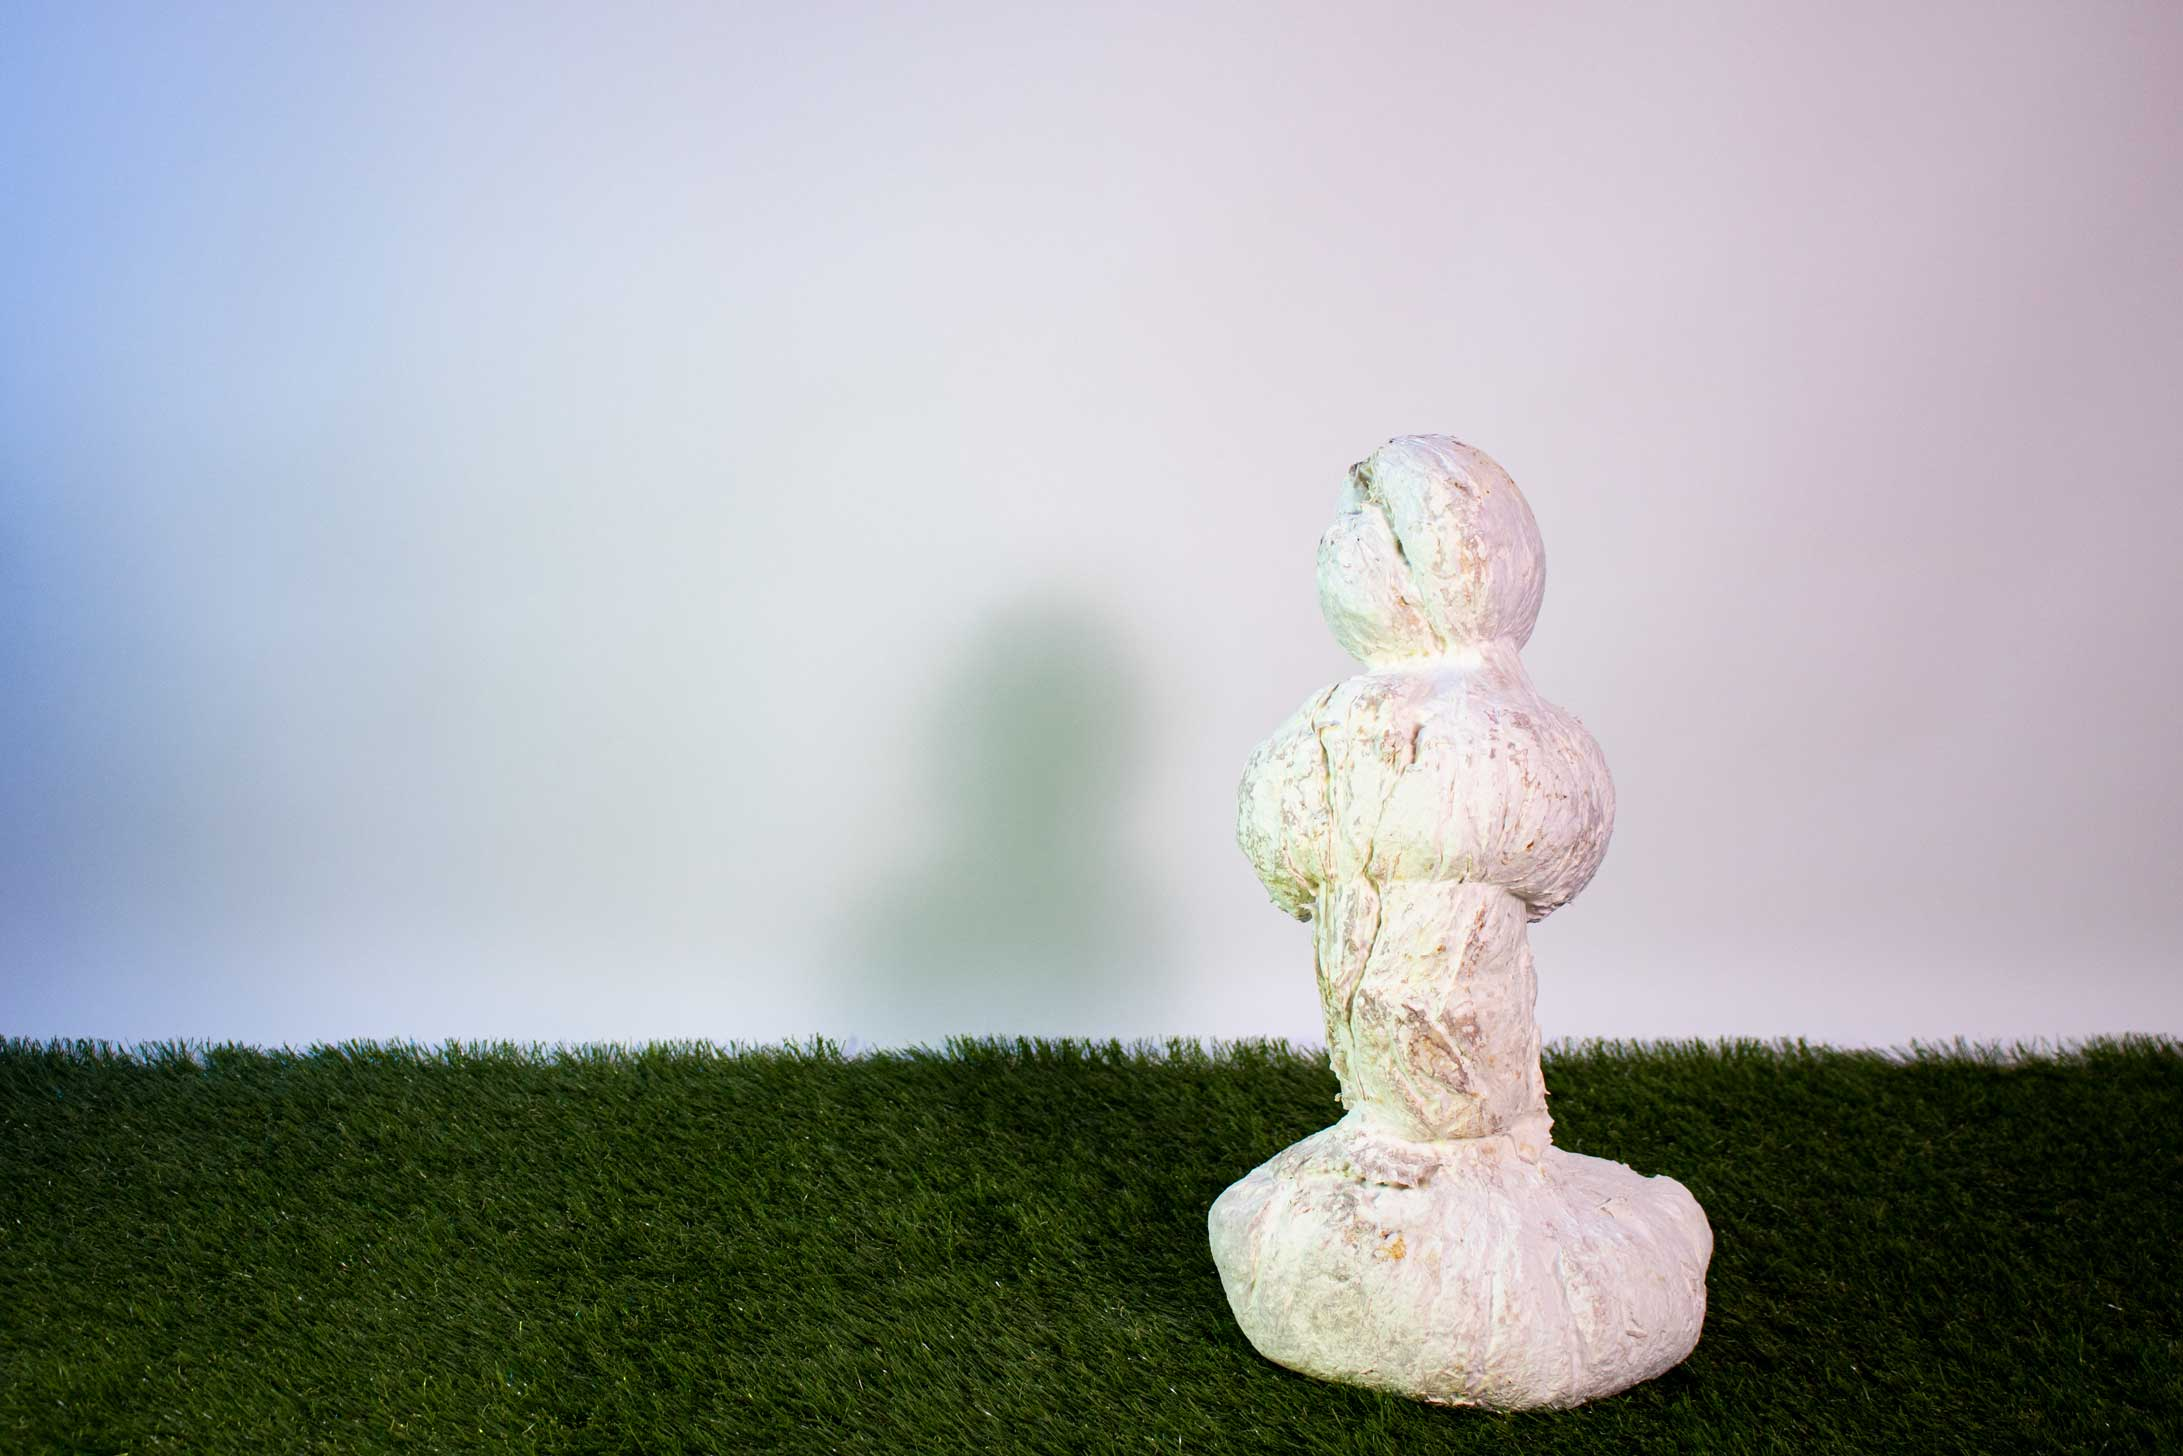 A white/cream textured, organic sculpture sits on faux grass in front of a white wall.